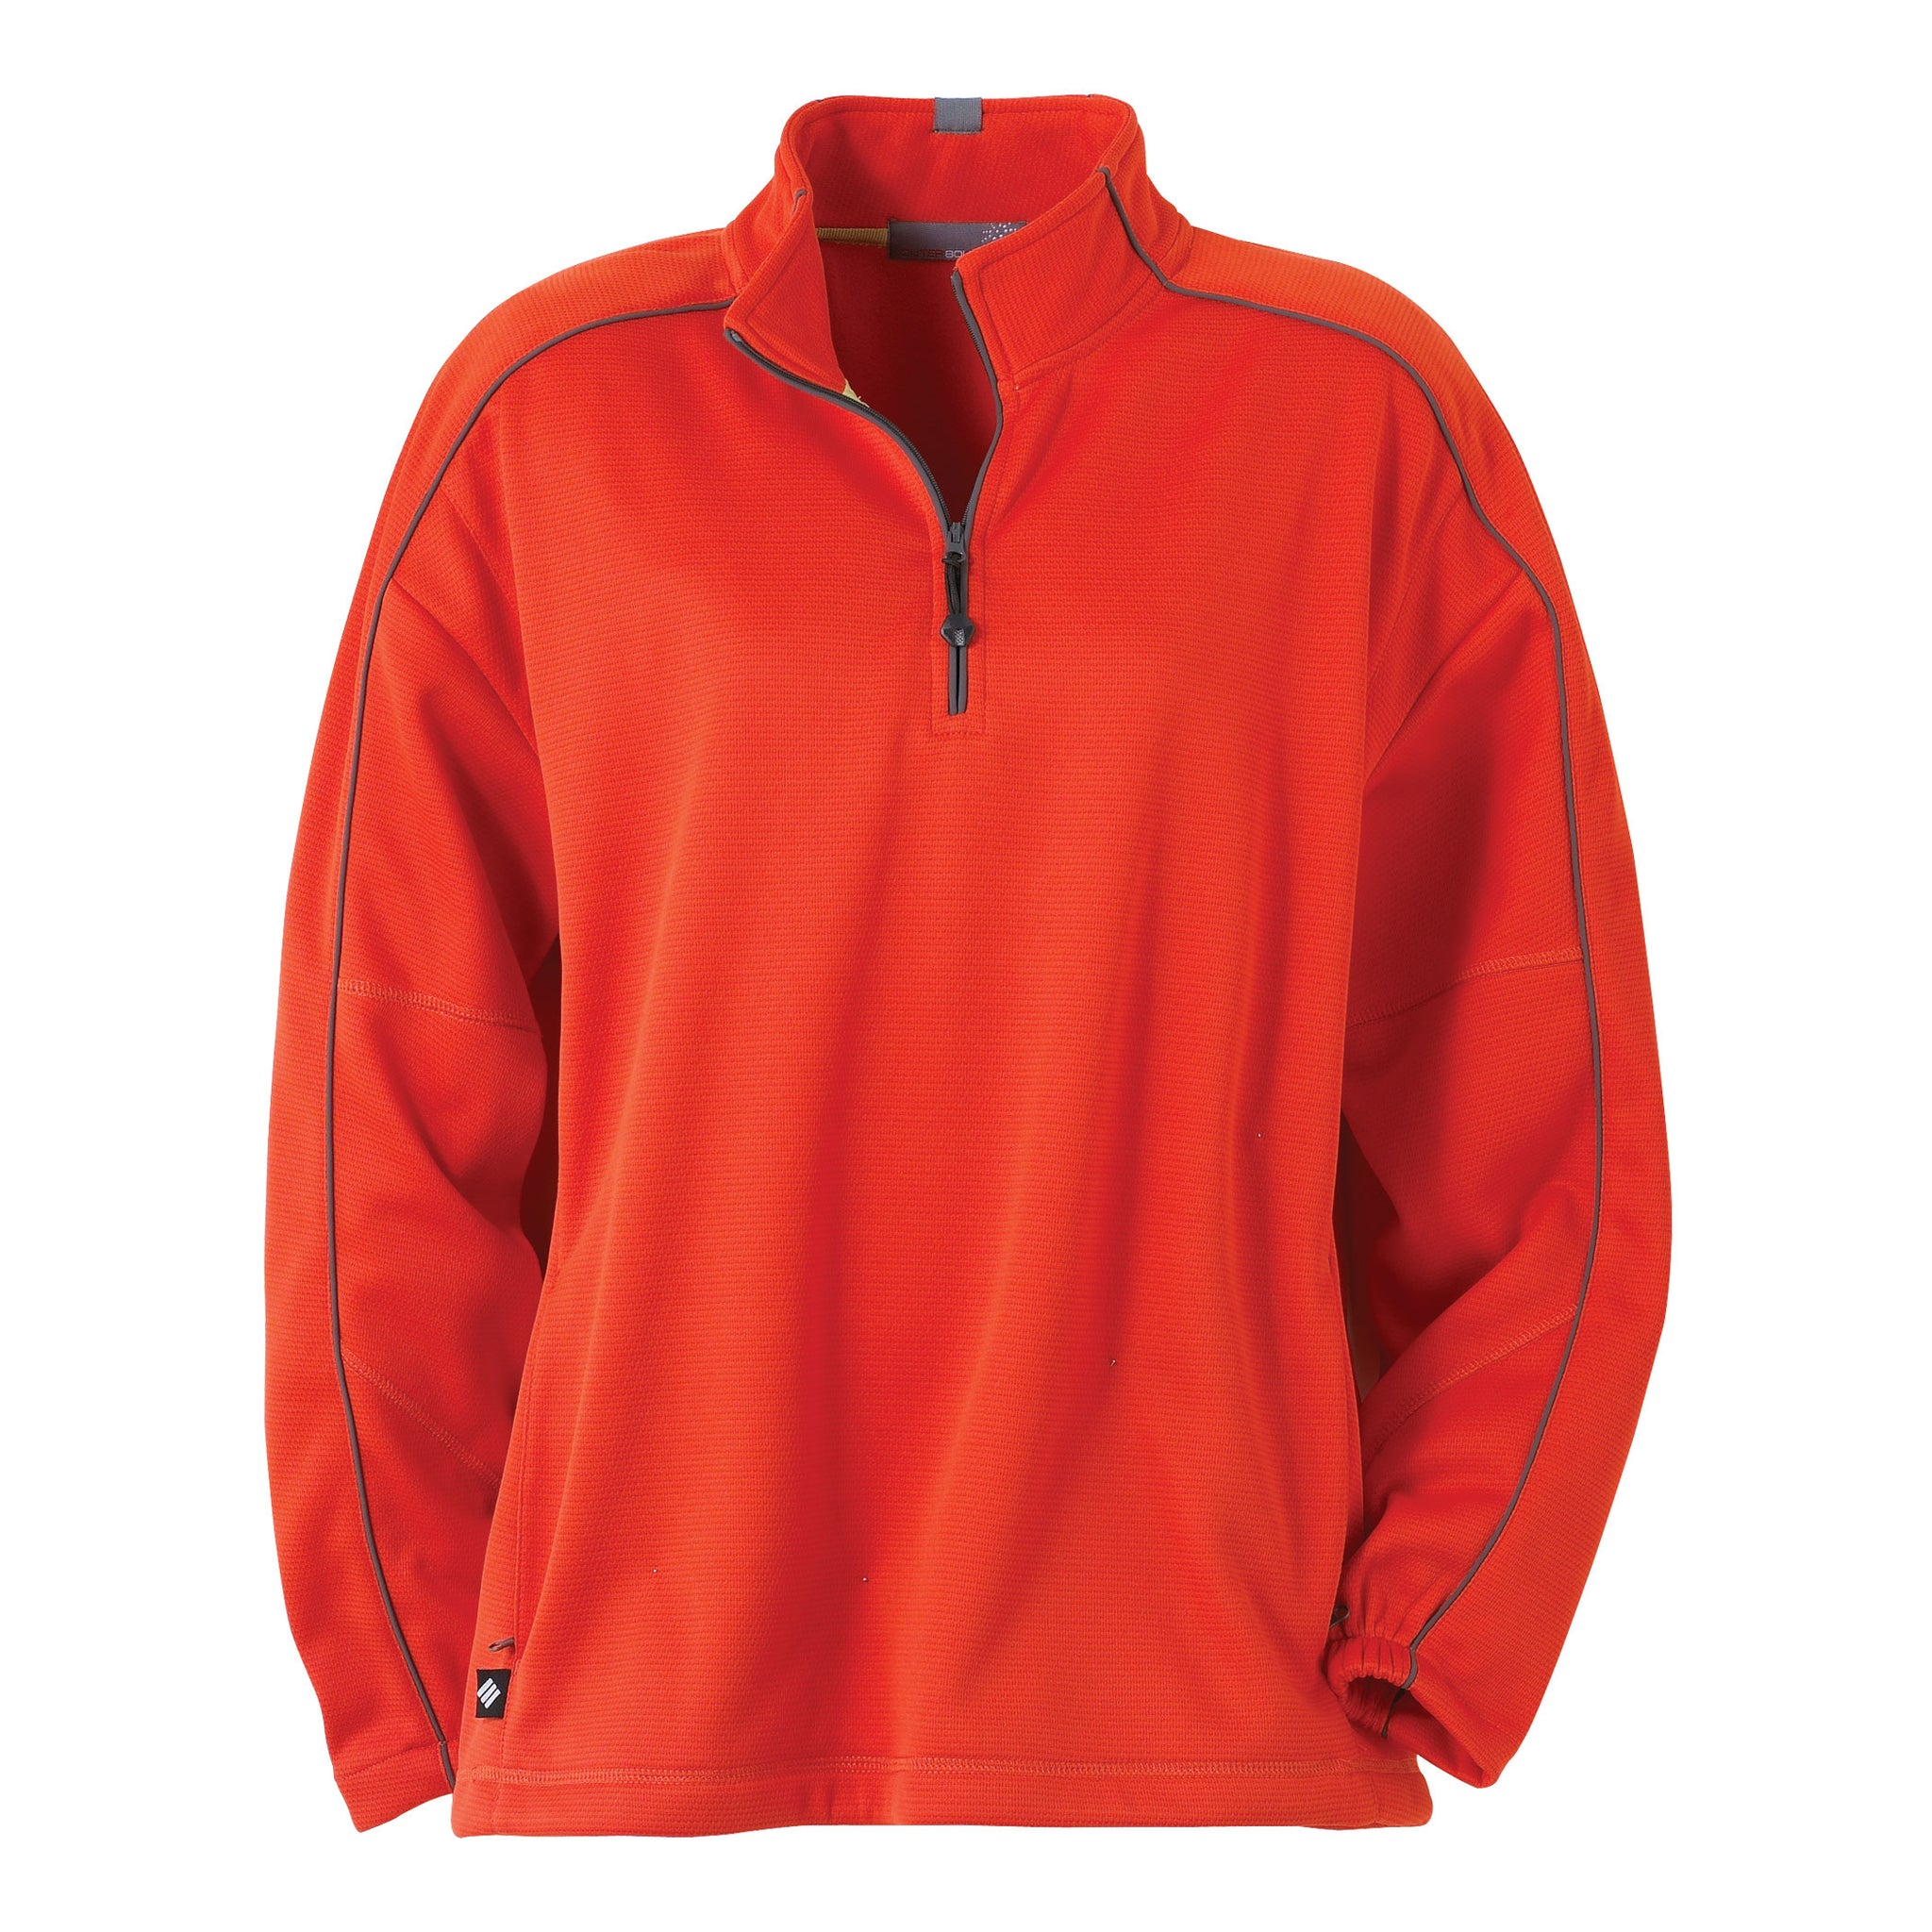 f740590be4cc OUTER BOUNDARY LADIES 1 4 ZIP BONDED FLEECE JACKET